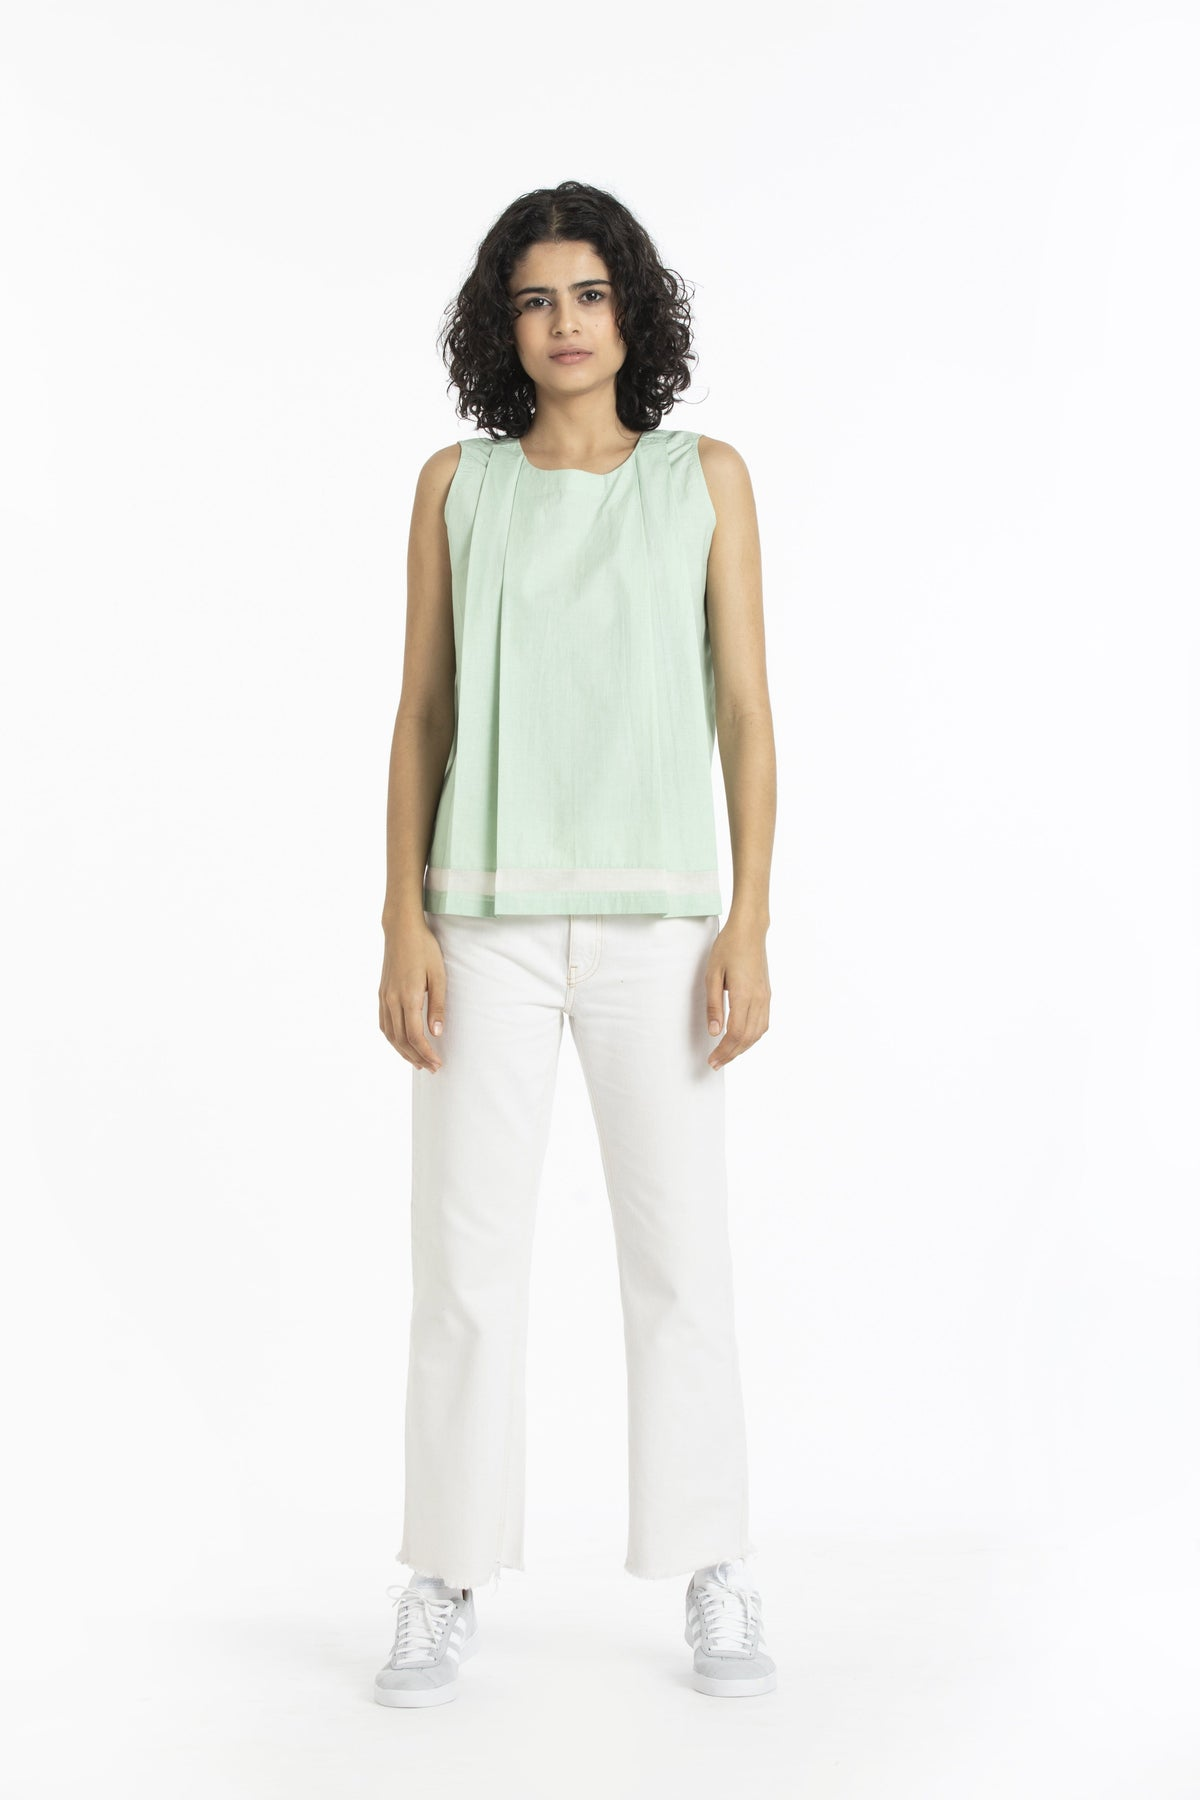 Three Shirts & Tops Pure cotton poplin pastel top